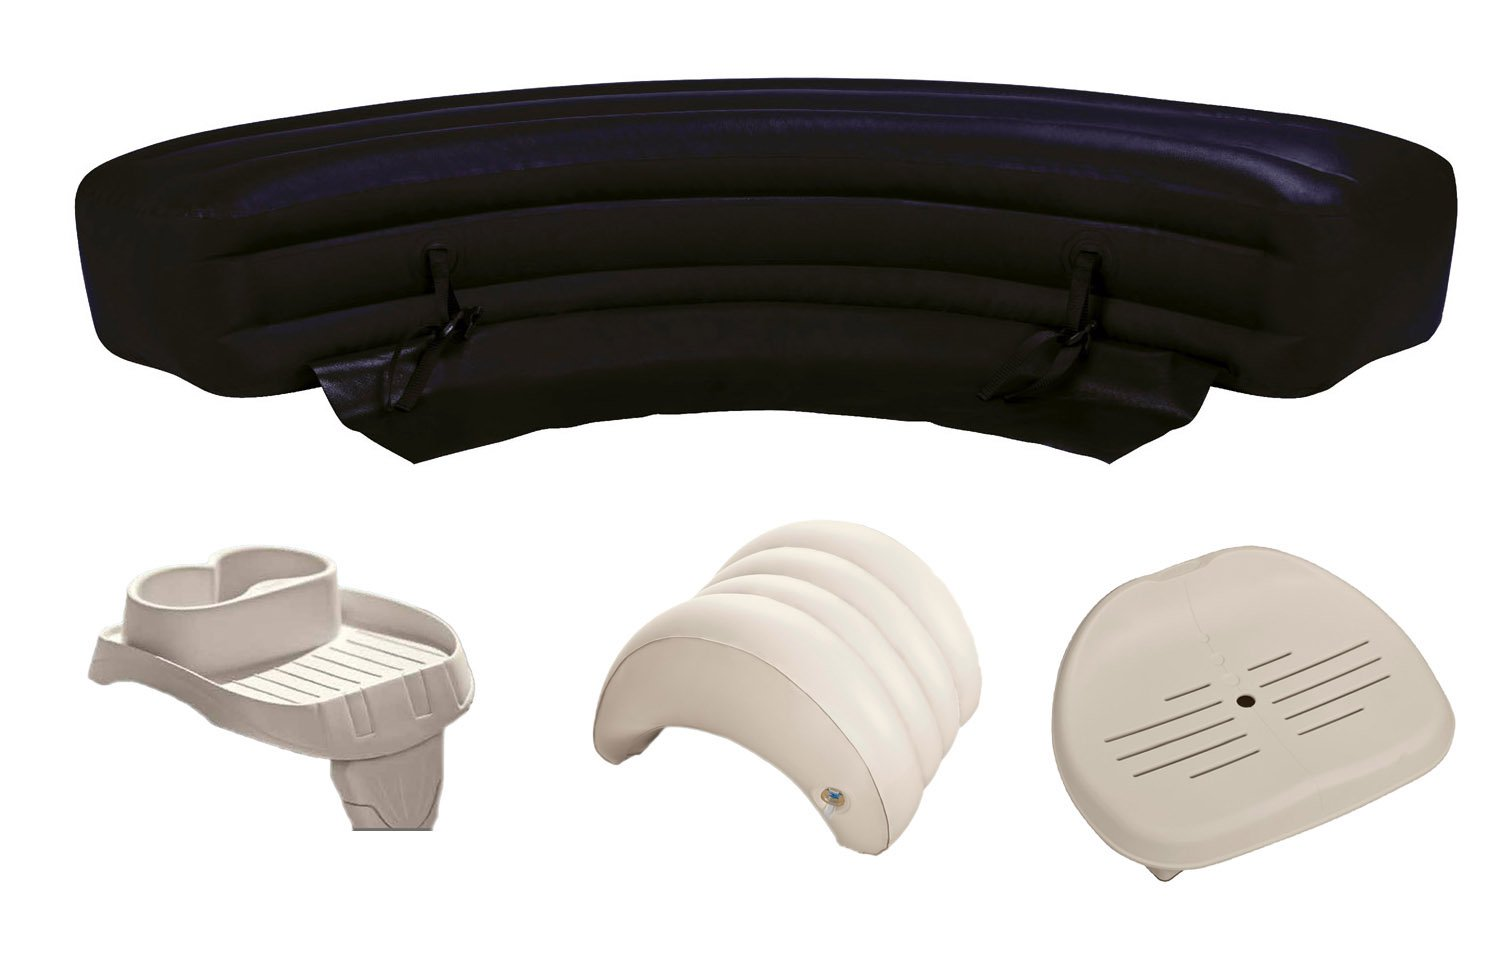 Intex PureSpa Hot Tub Accessories Package Headrest, Bench, Seat, and Cupholder by